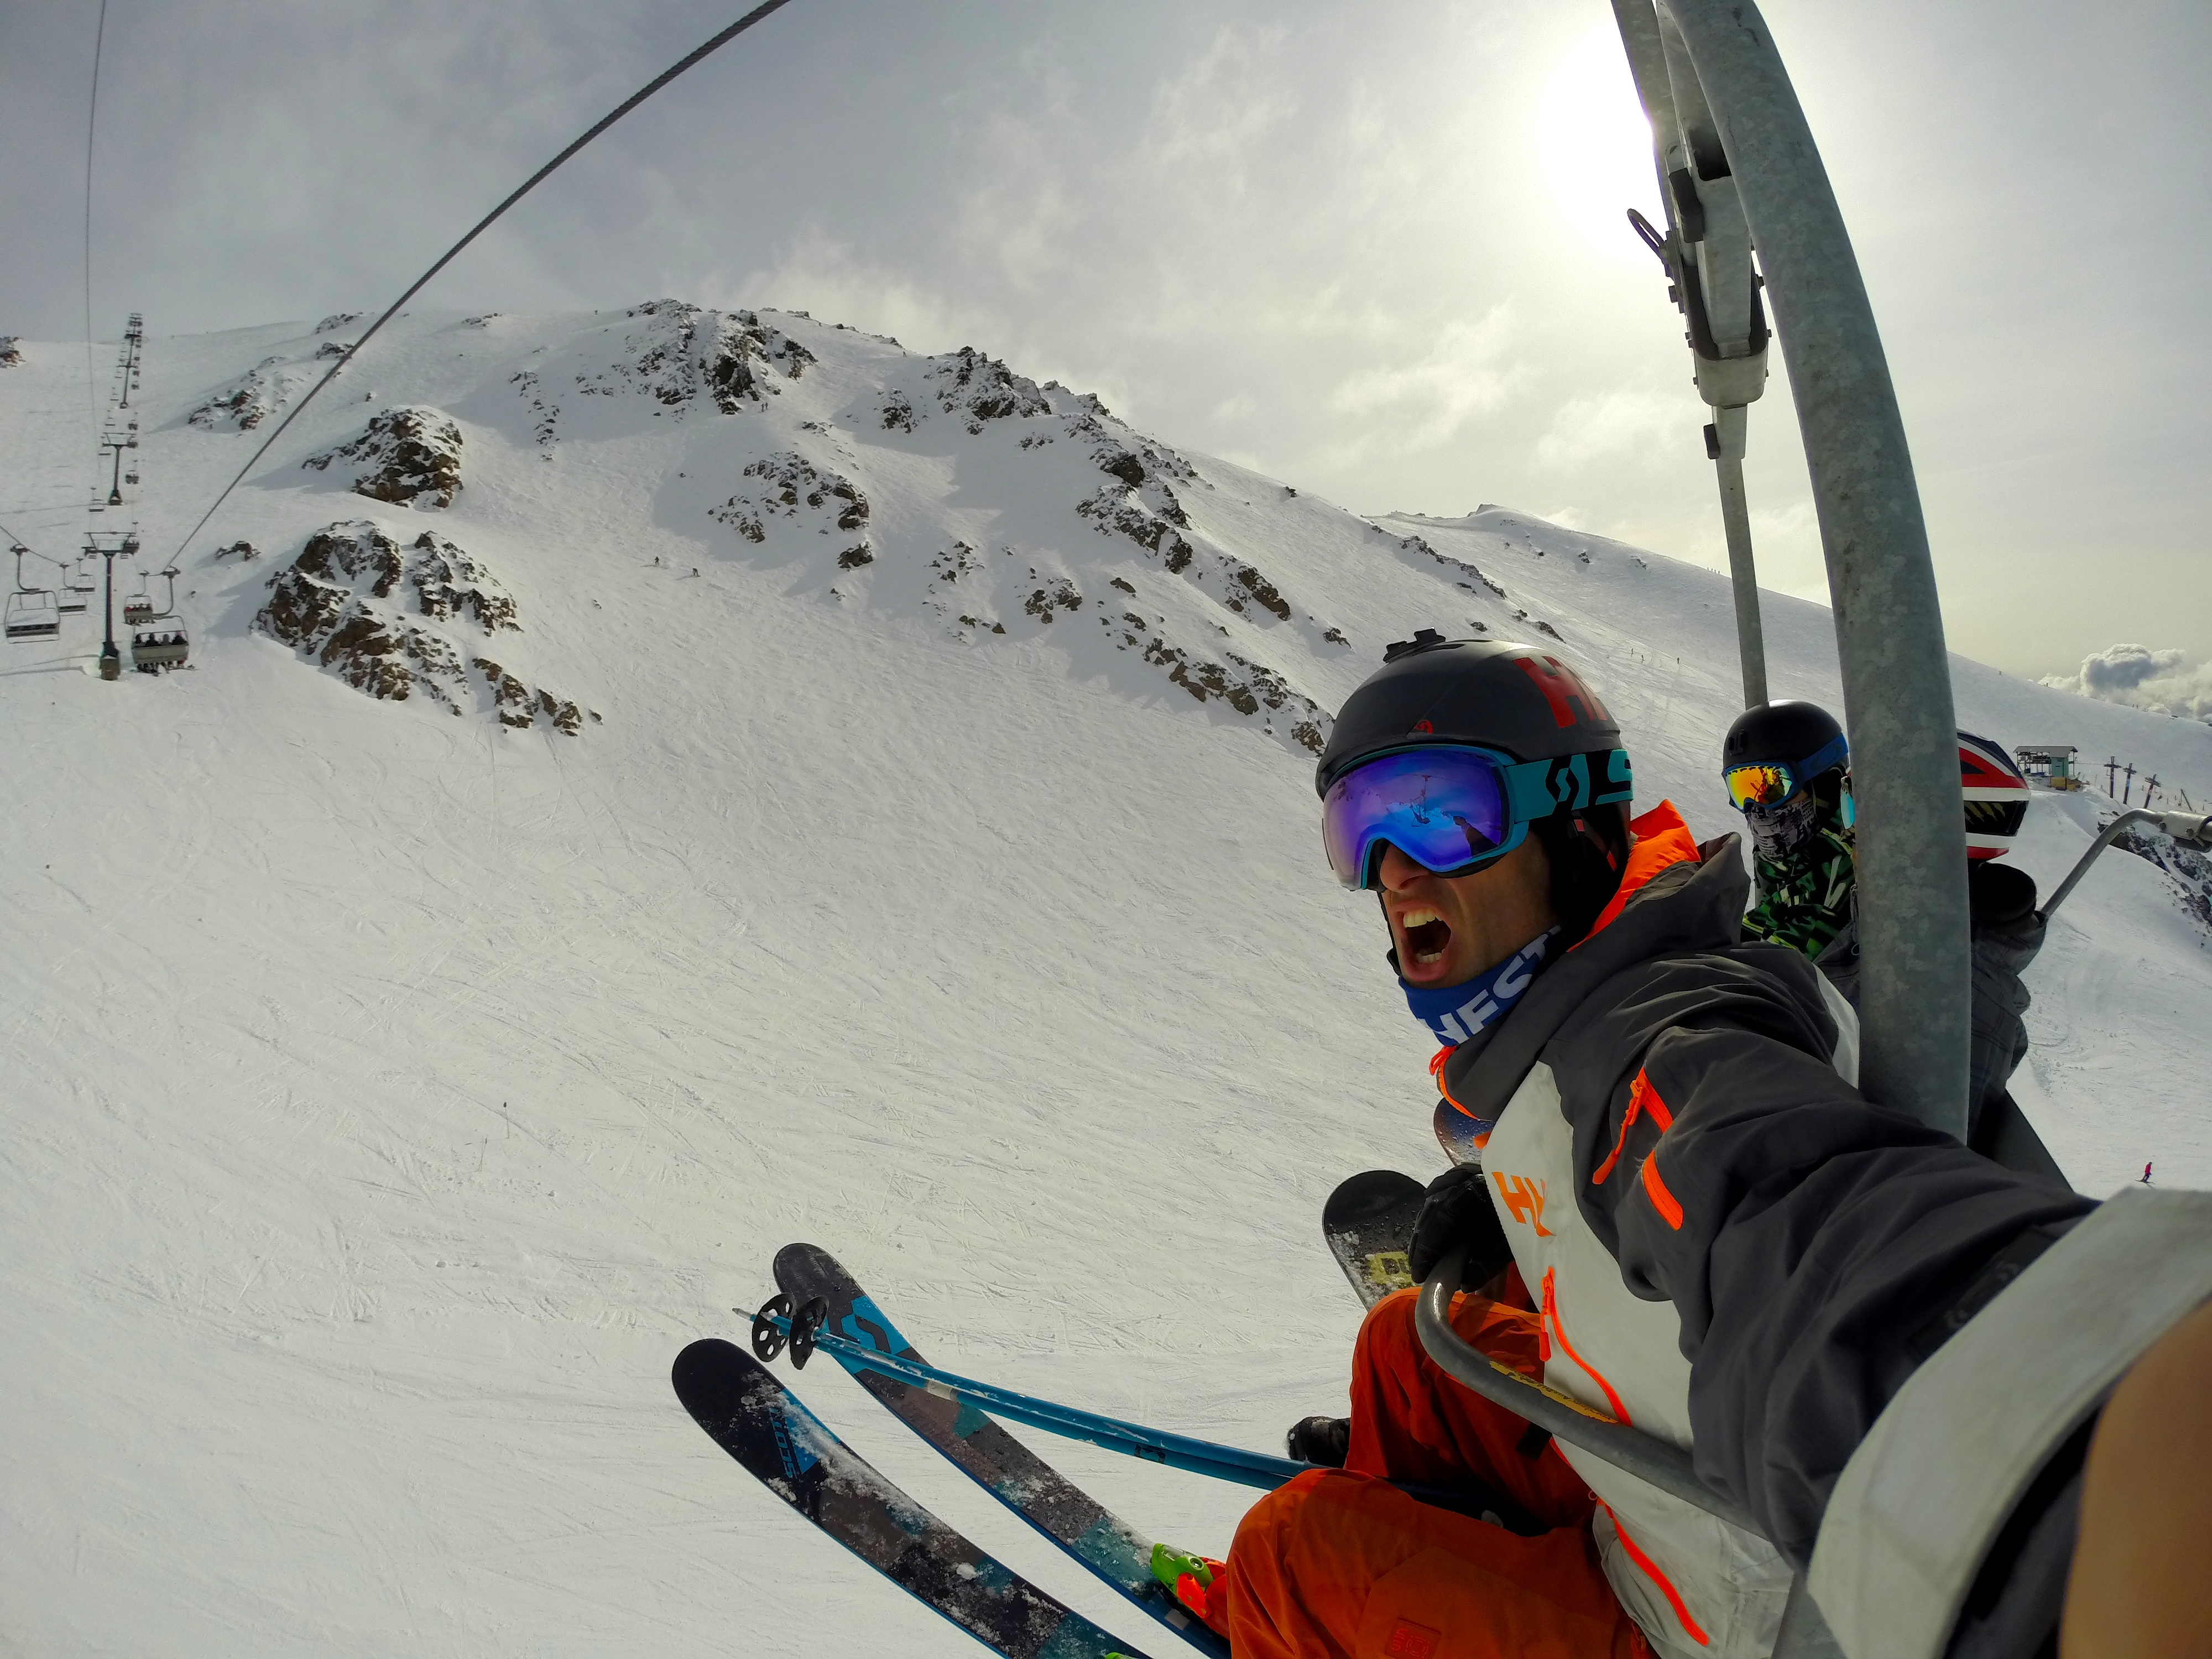 The author feeling the burn on the Nubes chair at Catedral ski resort in Bariloche, Argentina today.